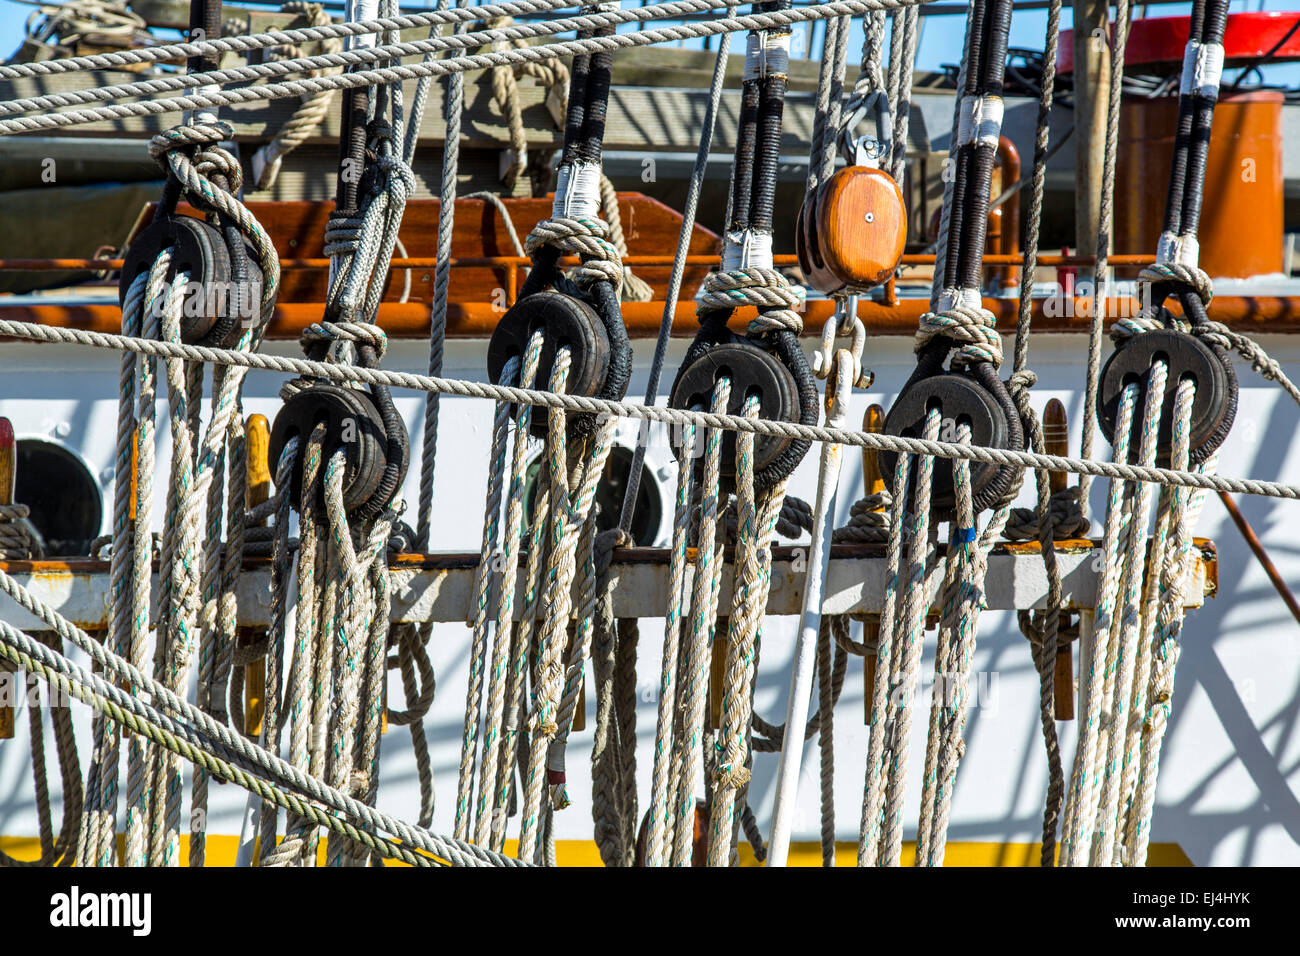 Willemsoord, former State Marine shipyard, now a mix of museum, restaurants, Companies, is a historical monument, - Stock Image